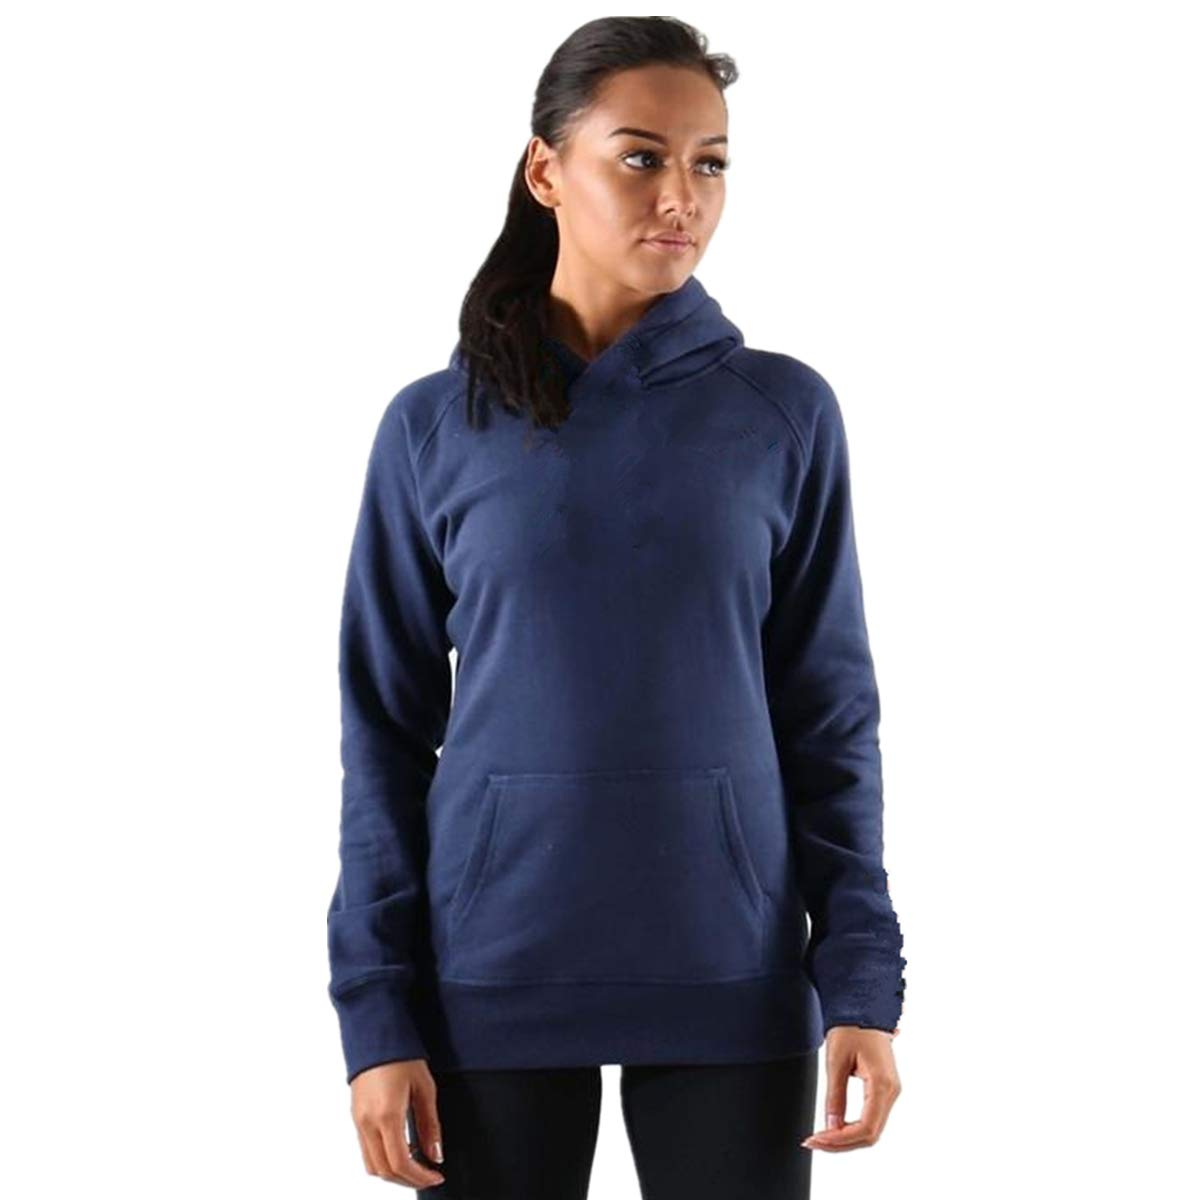 Muscle Killer Womens Basic Thin Cotton Pullover Hoodie Sweater Sports Workout with Pocket